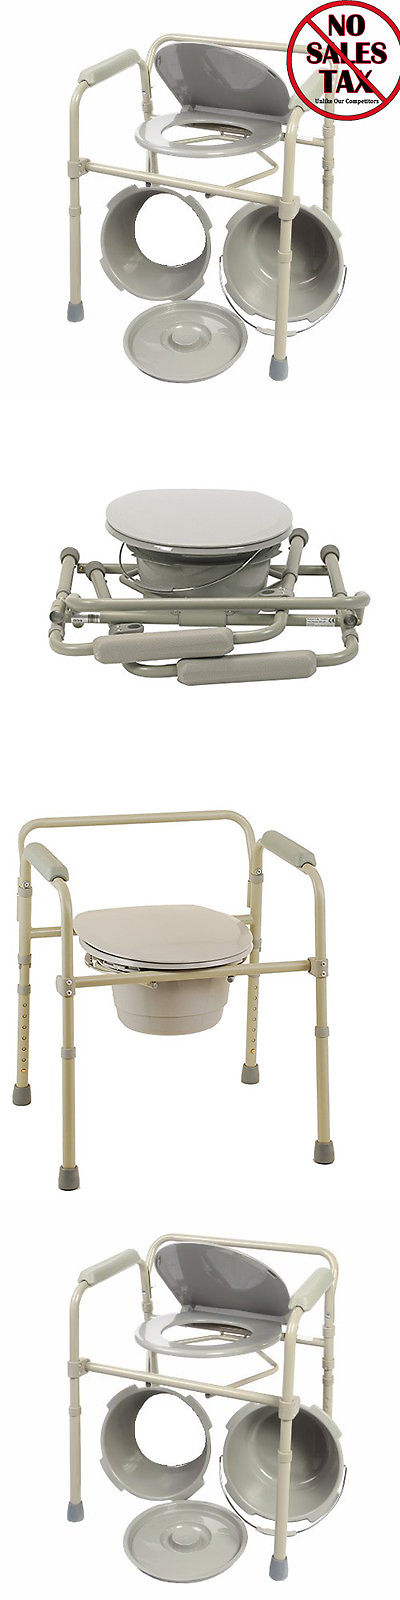 Toilet Frames and Commodes: Adult Commode Chair Raised Over Toilet ...